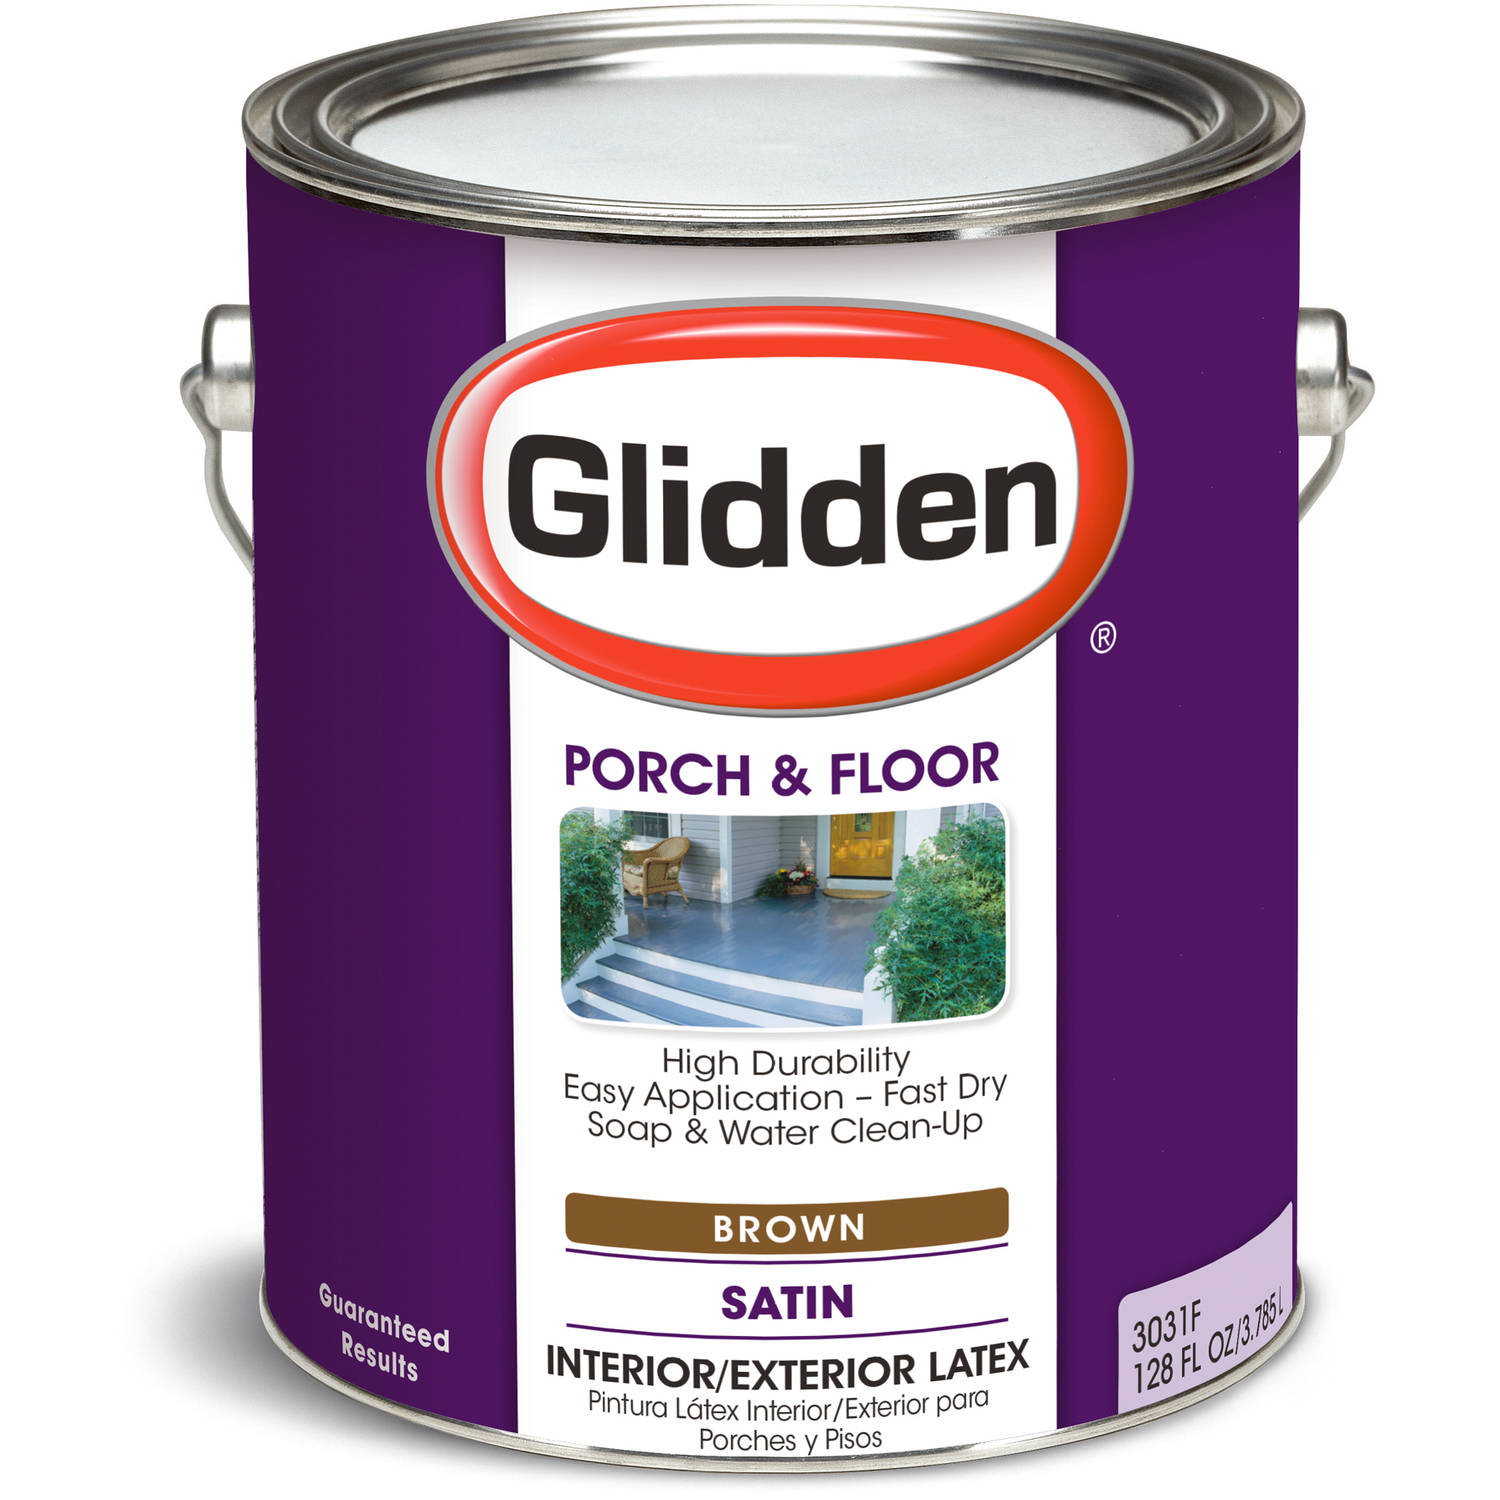 Glidden Ceiling Paint Grab N Go Interior White Flat Finish